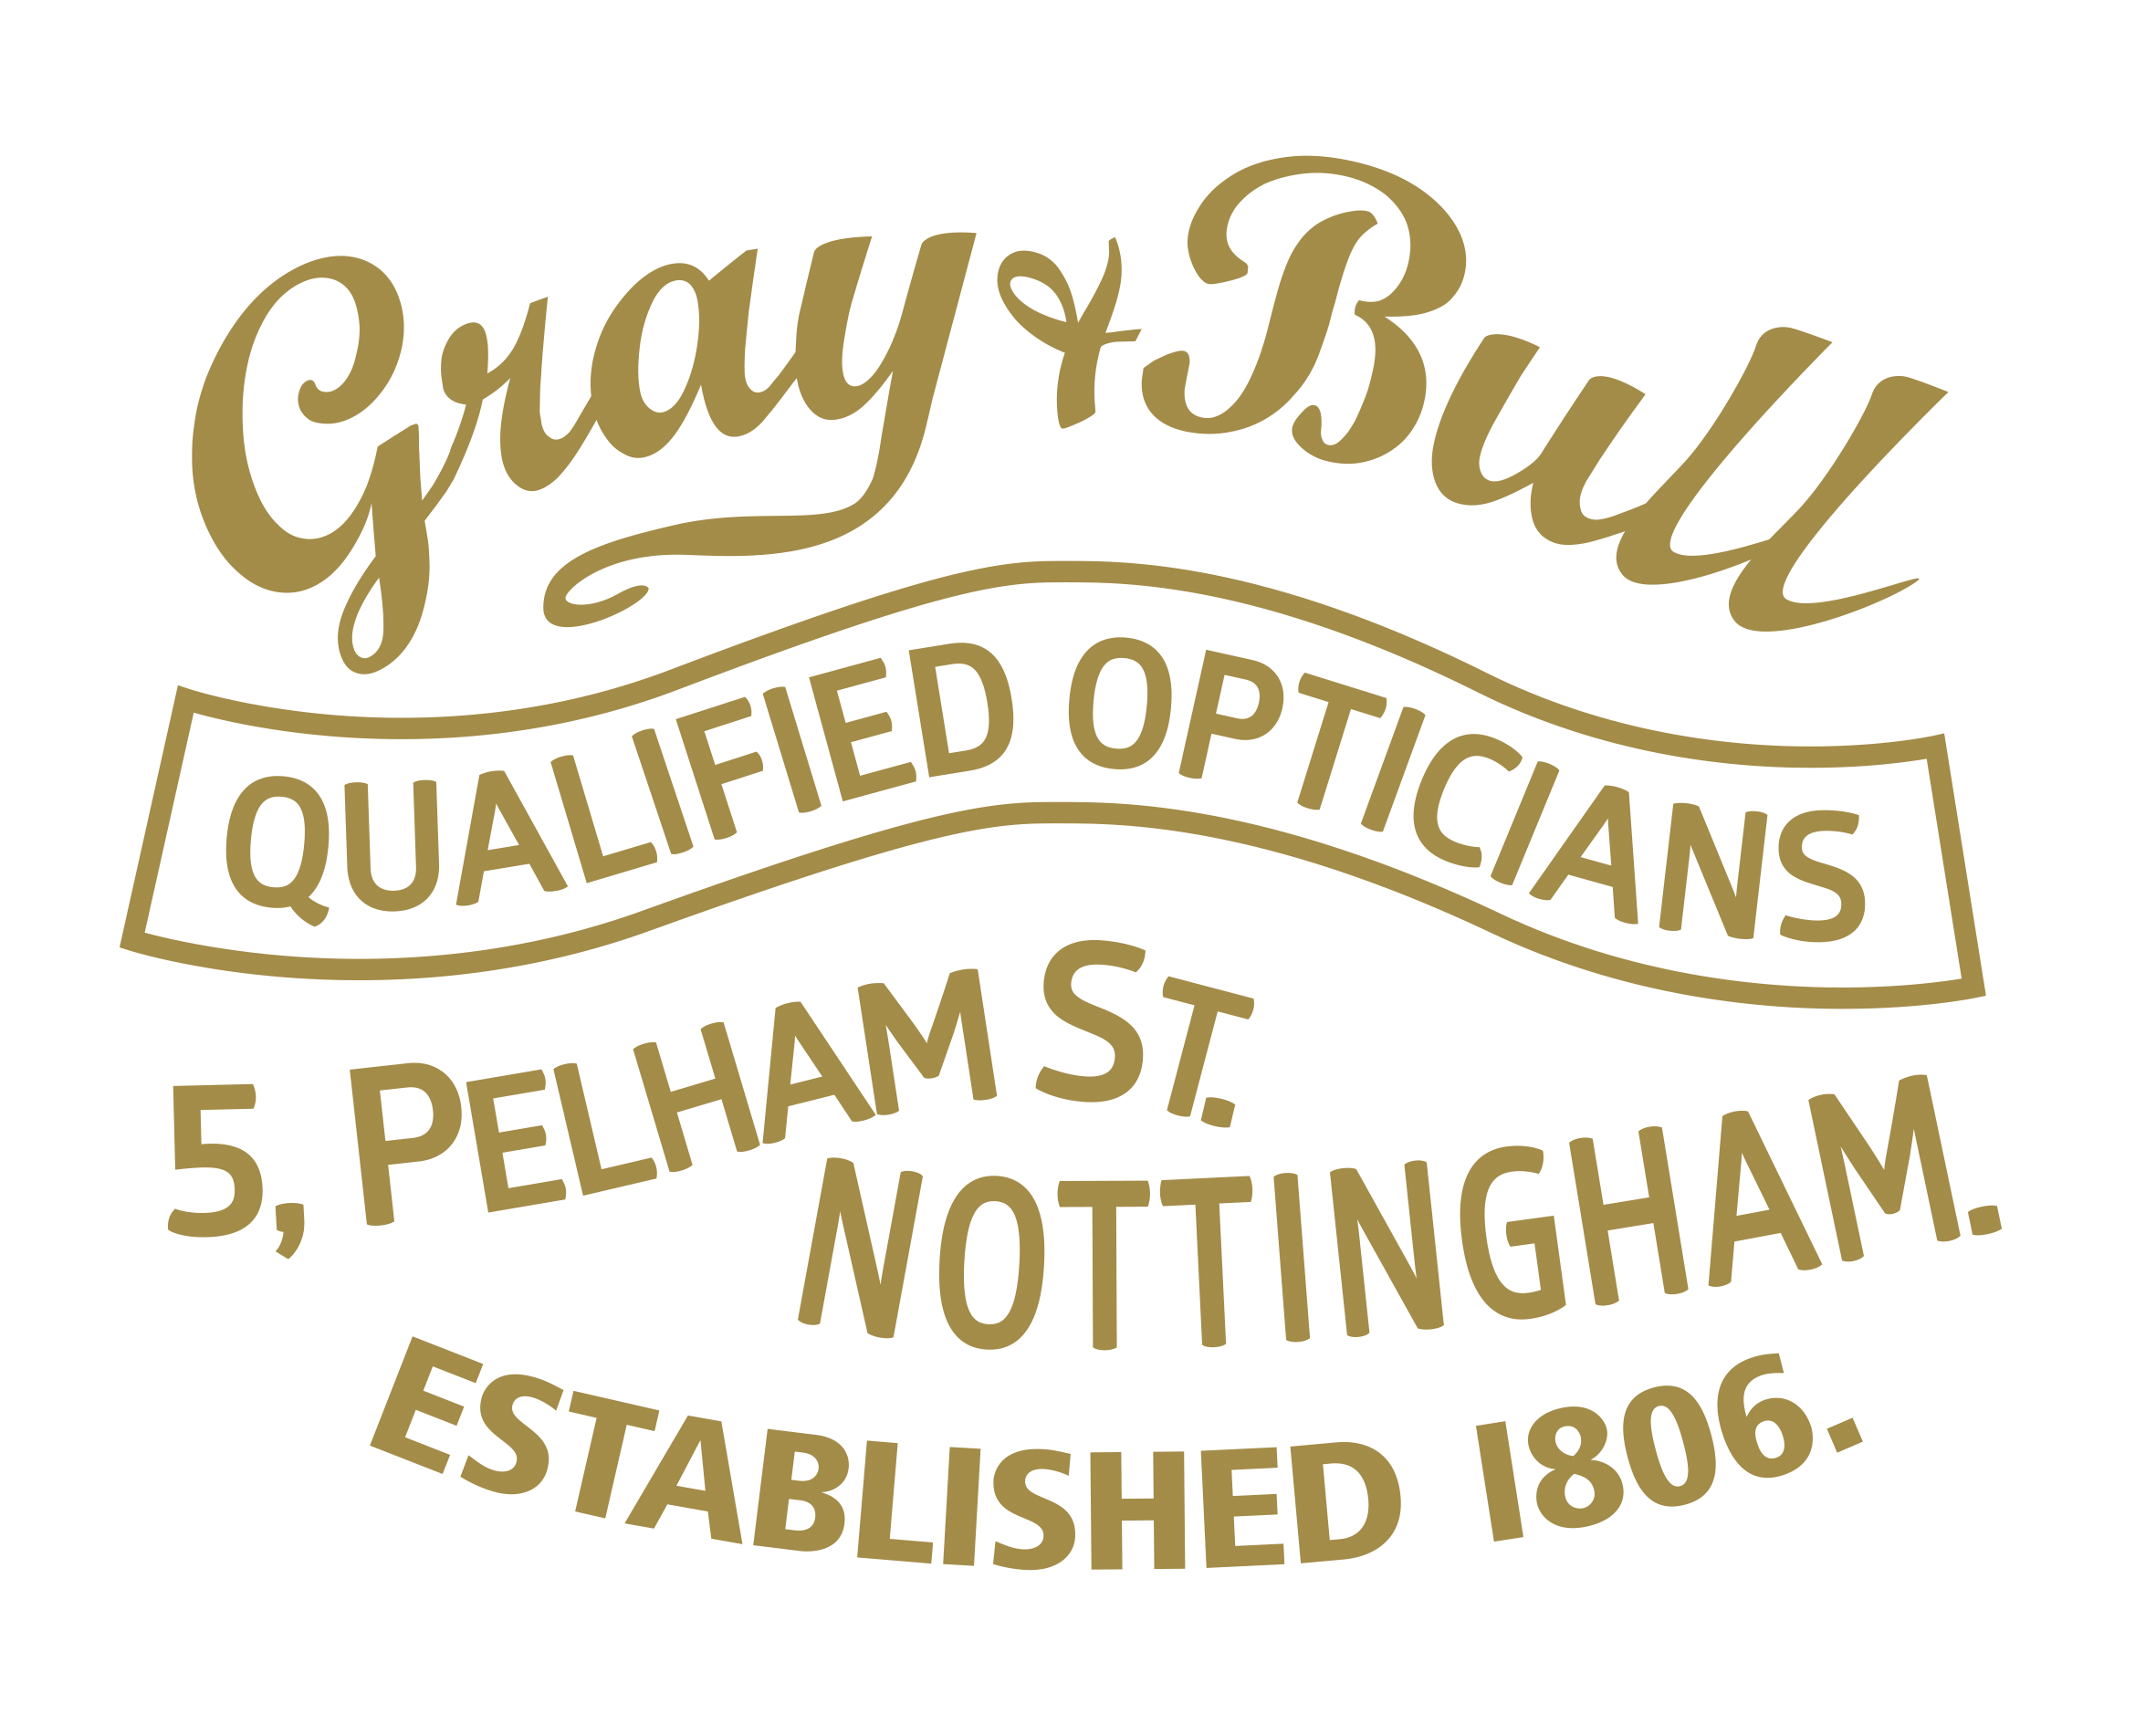 5fd1e9c6da Gray   Bull offer the best choice of hard to find frames and also offer the  widest choice of lens options that I have ever seen. Their customer service  and ...